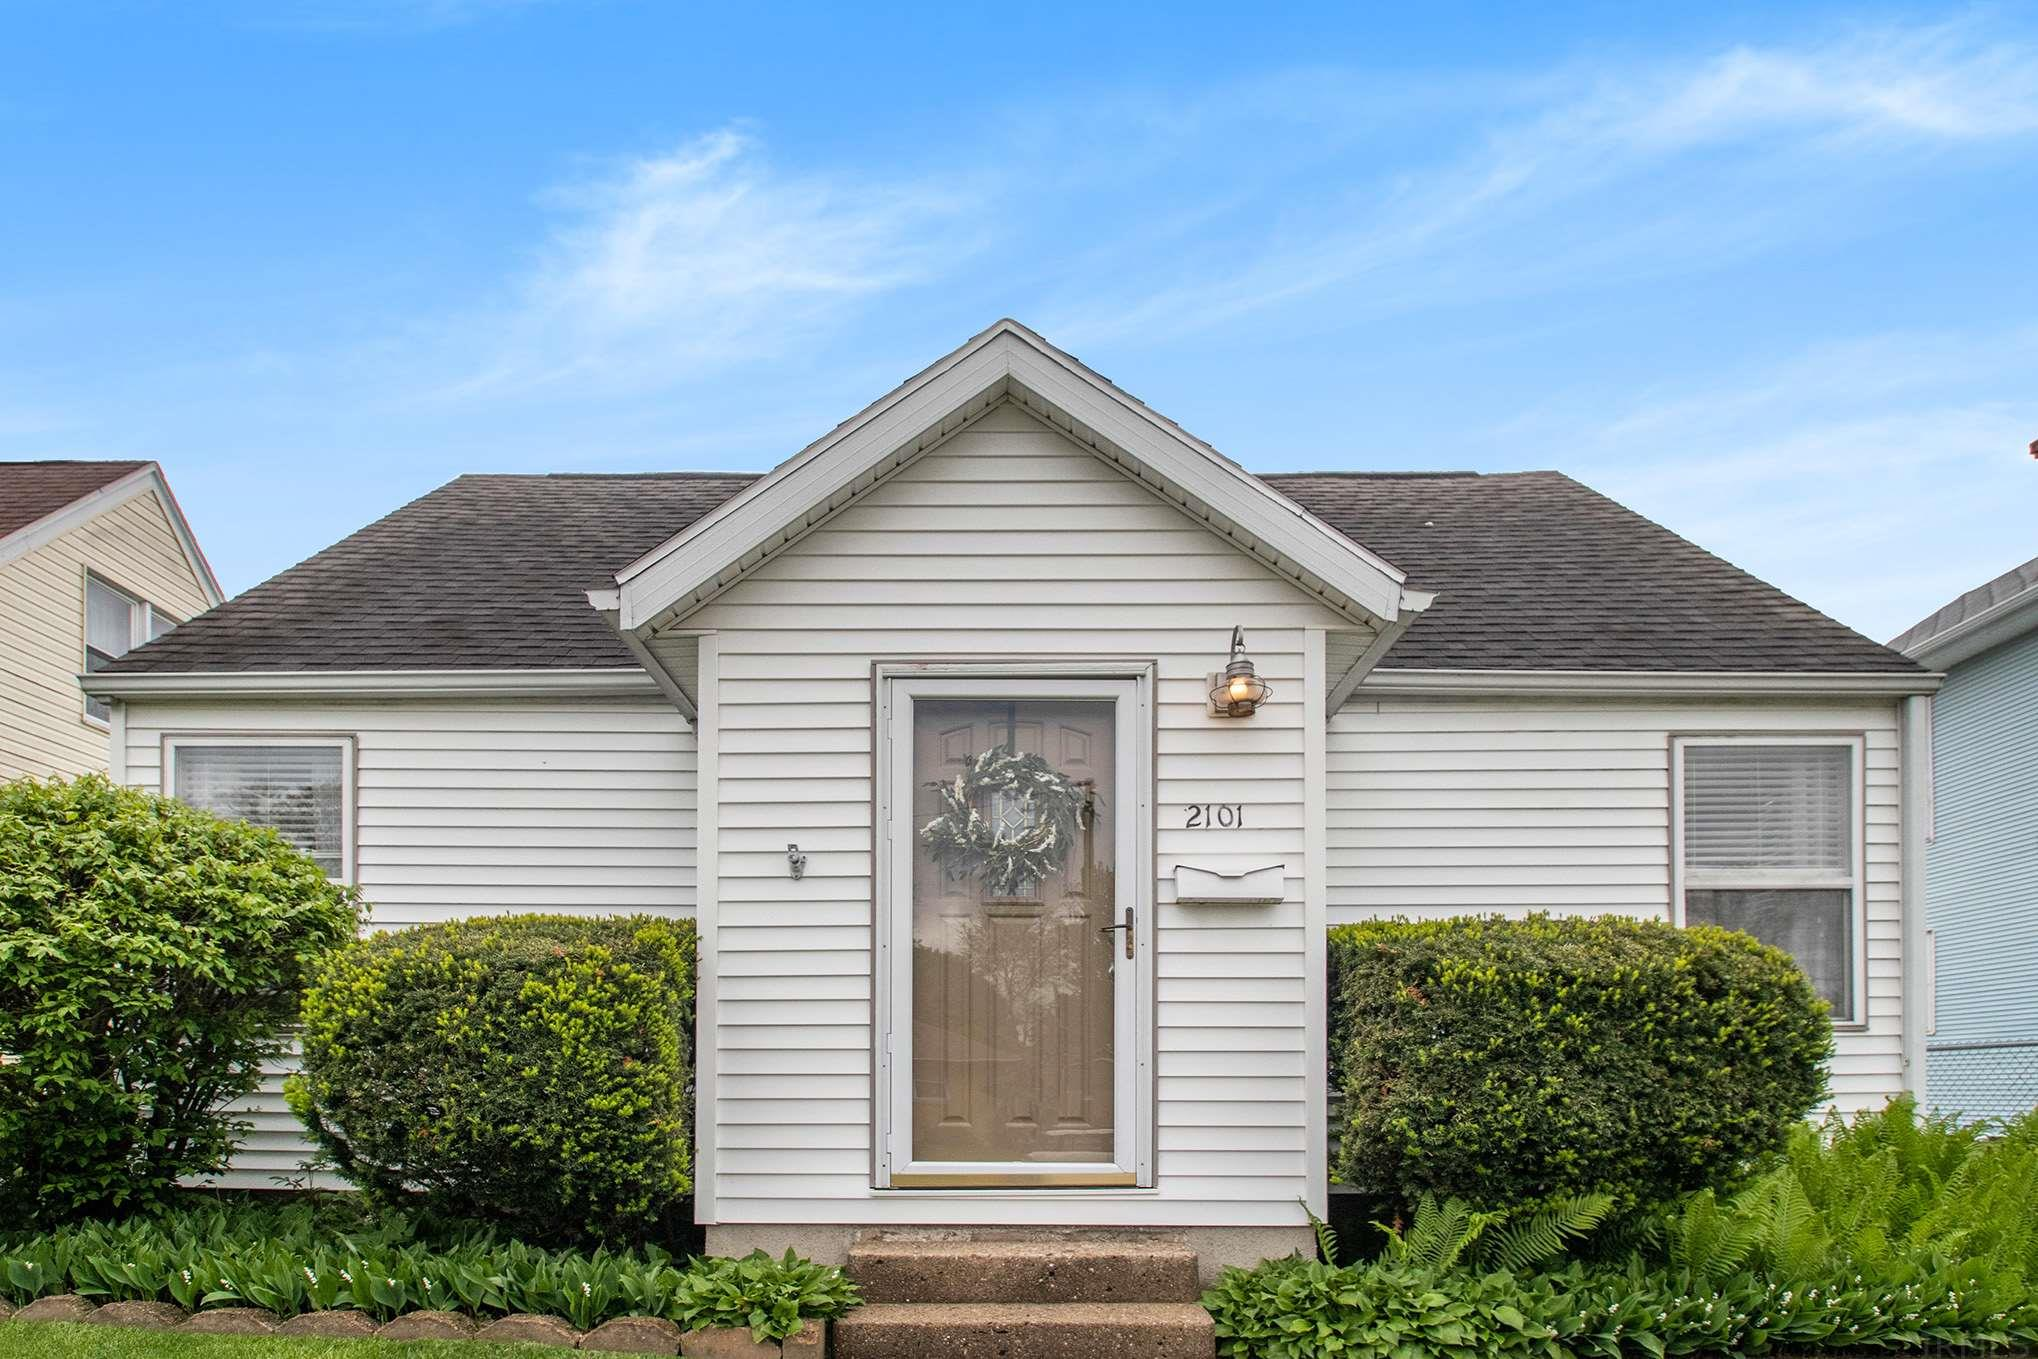 2101 S Dorothy South Bend, IN 46613